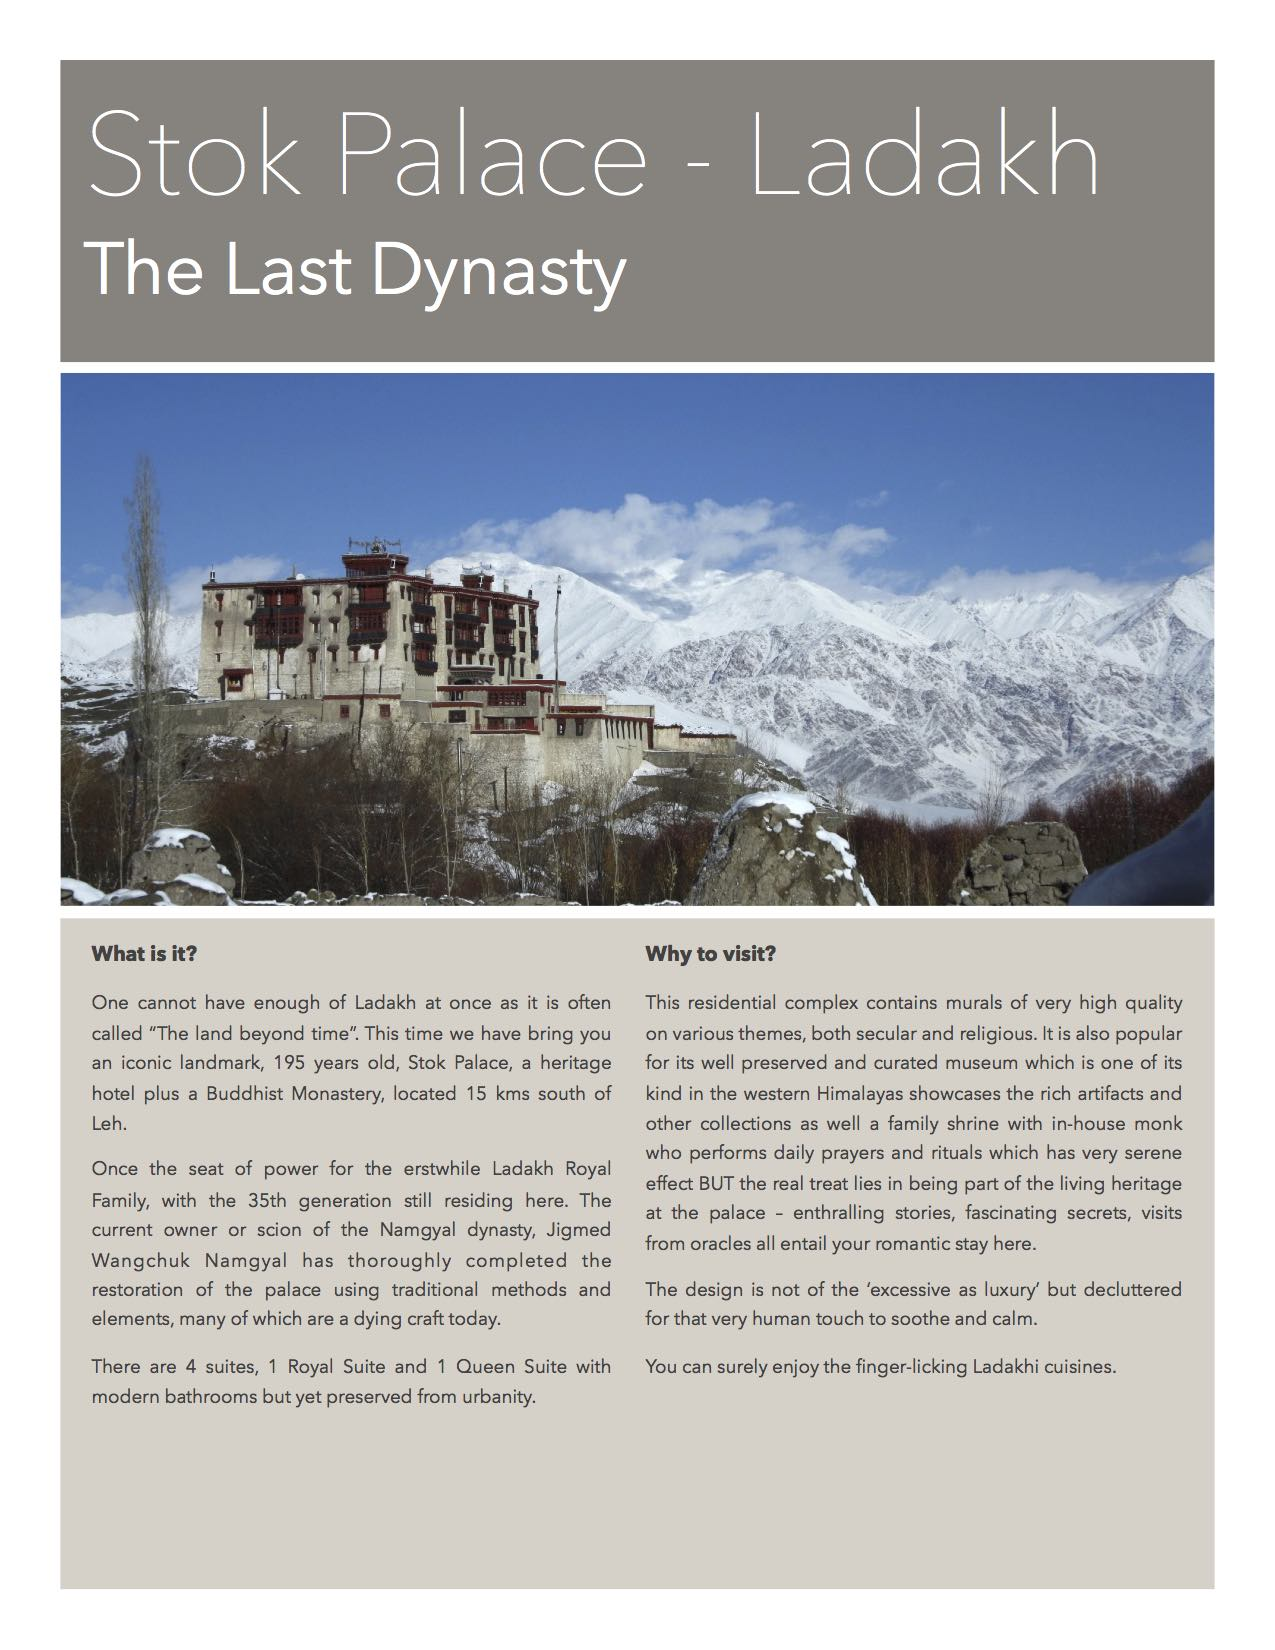 Stok Palace - Your stay in Ladakh